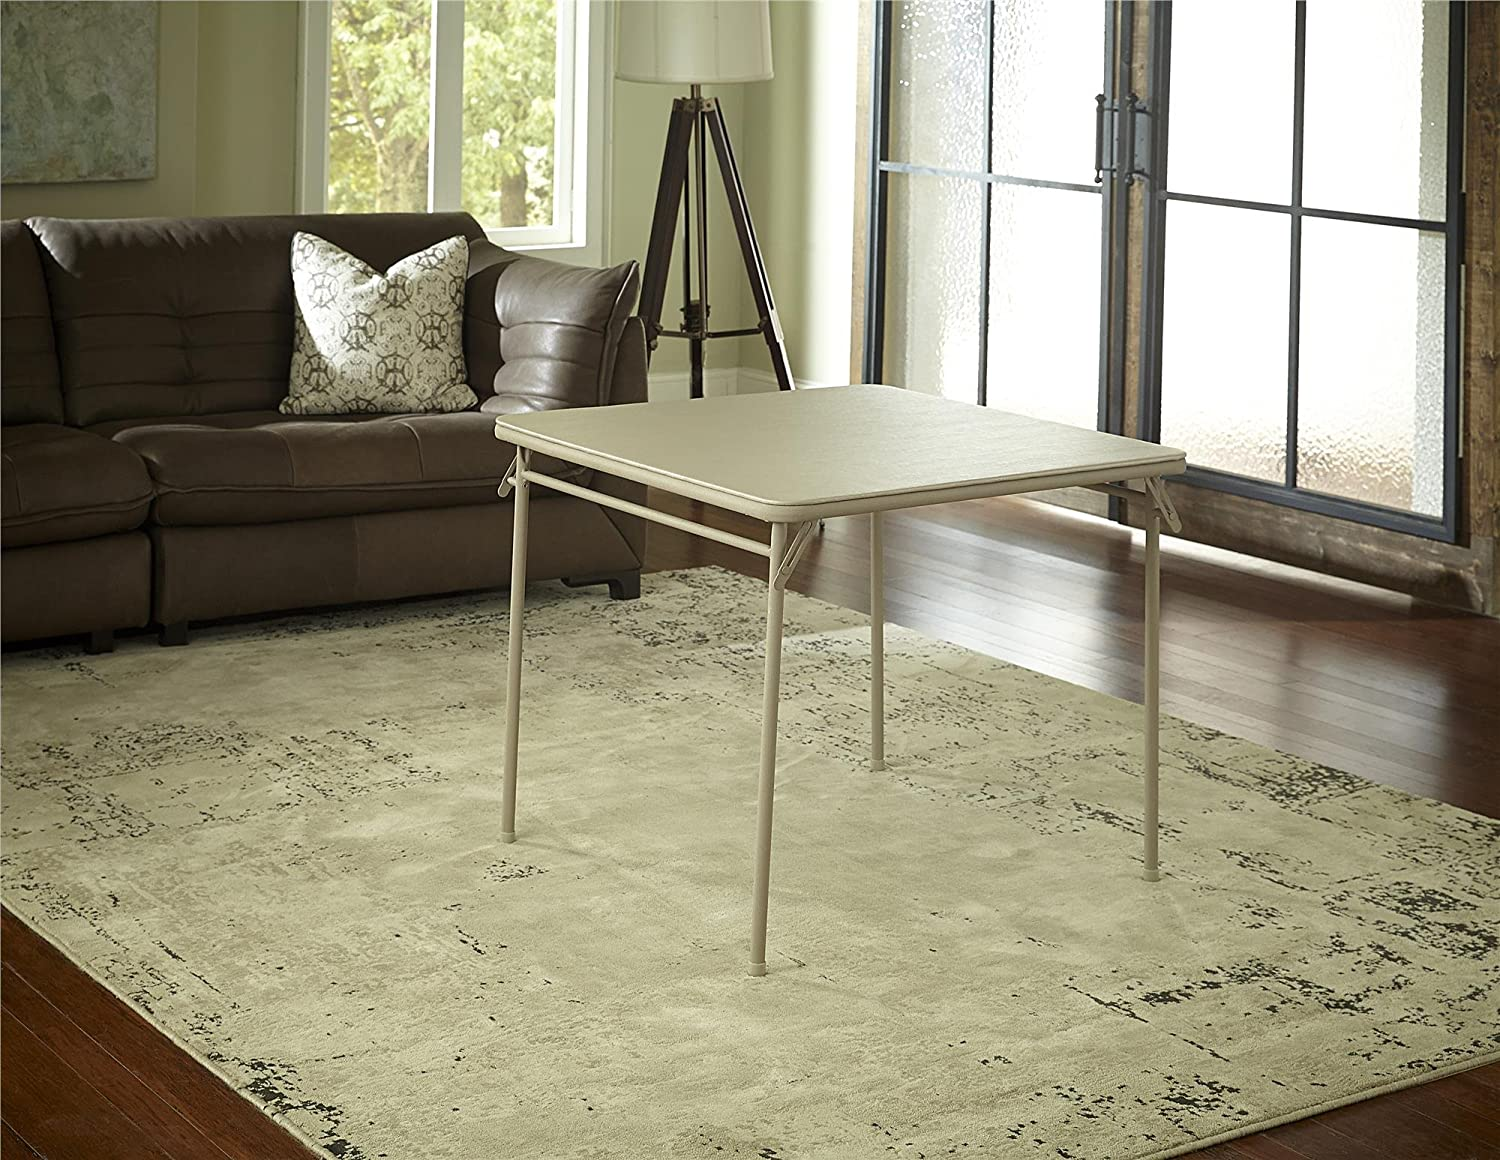 Cosco 34 Vinyl Top Folding Table